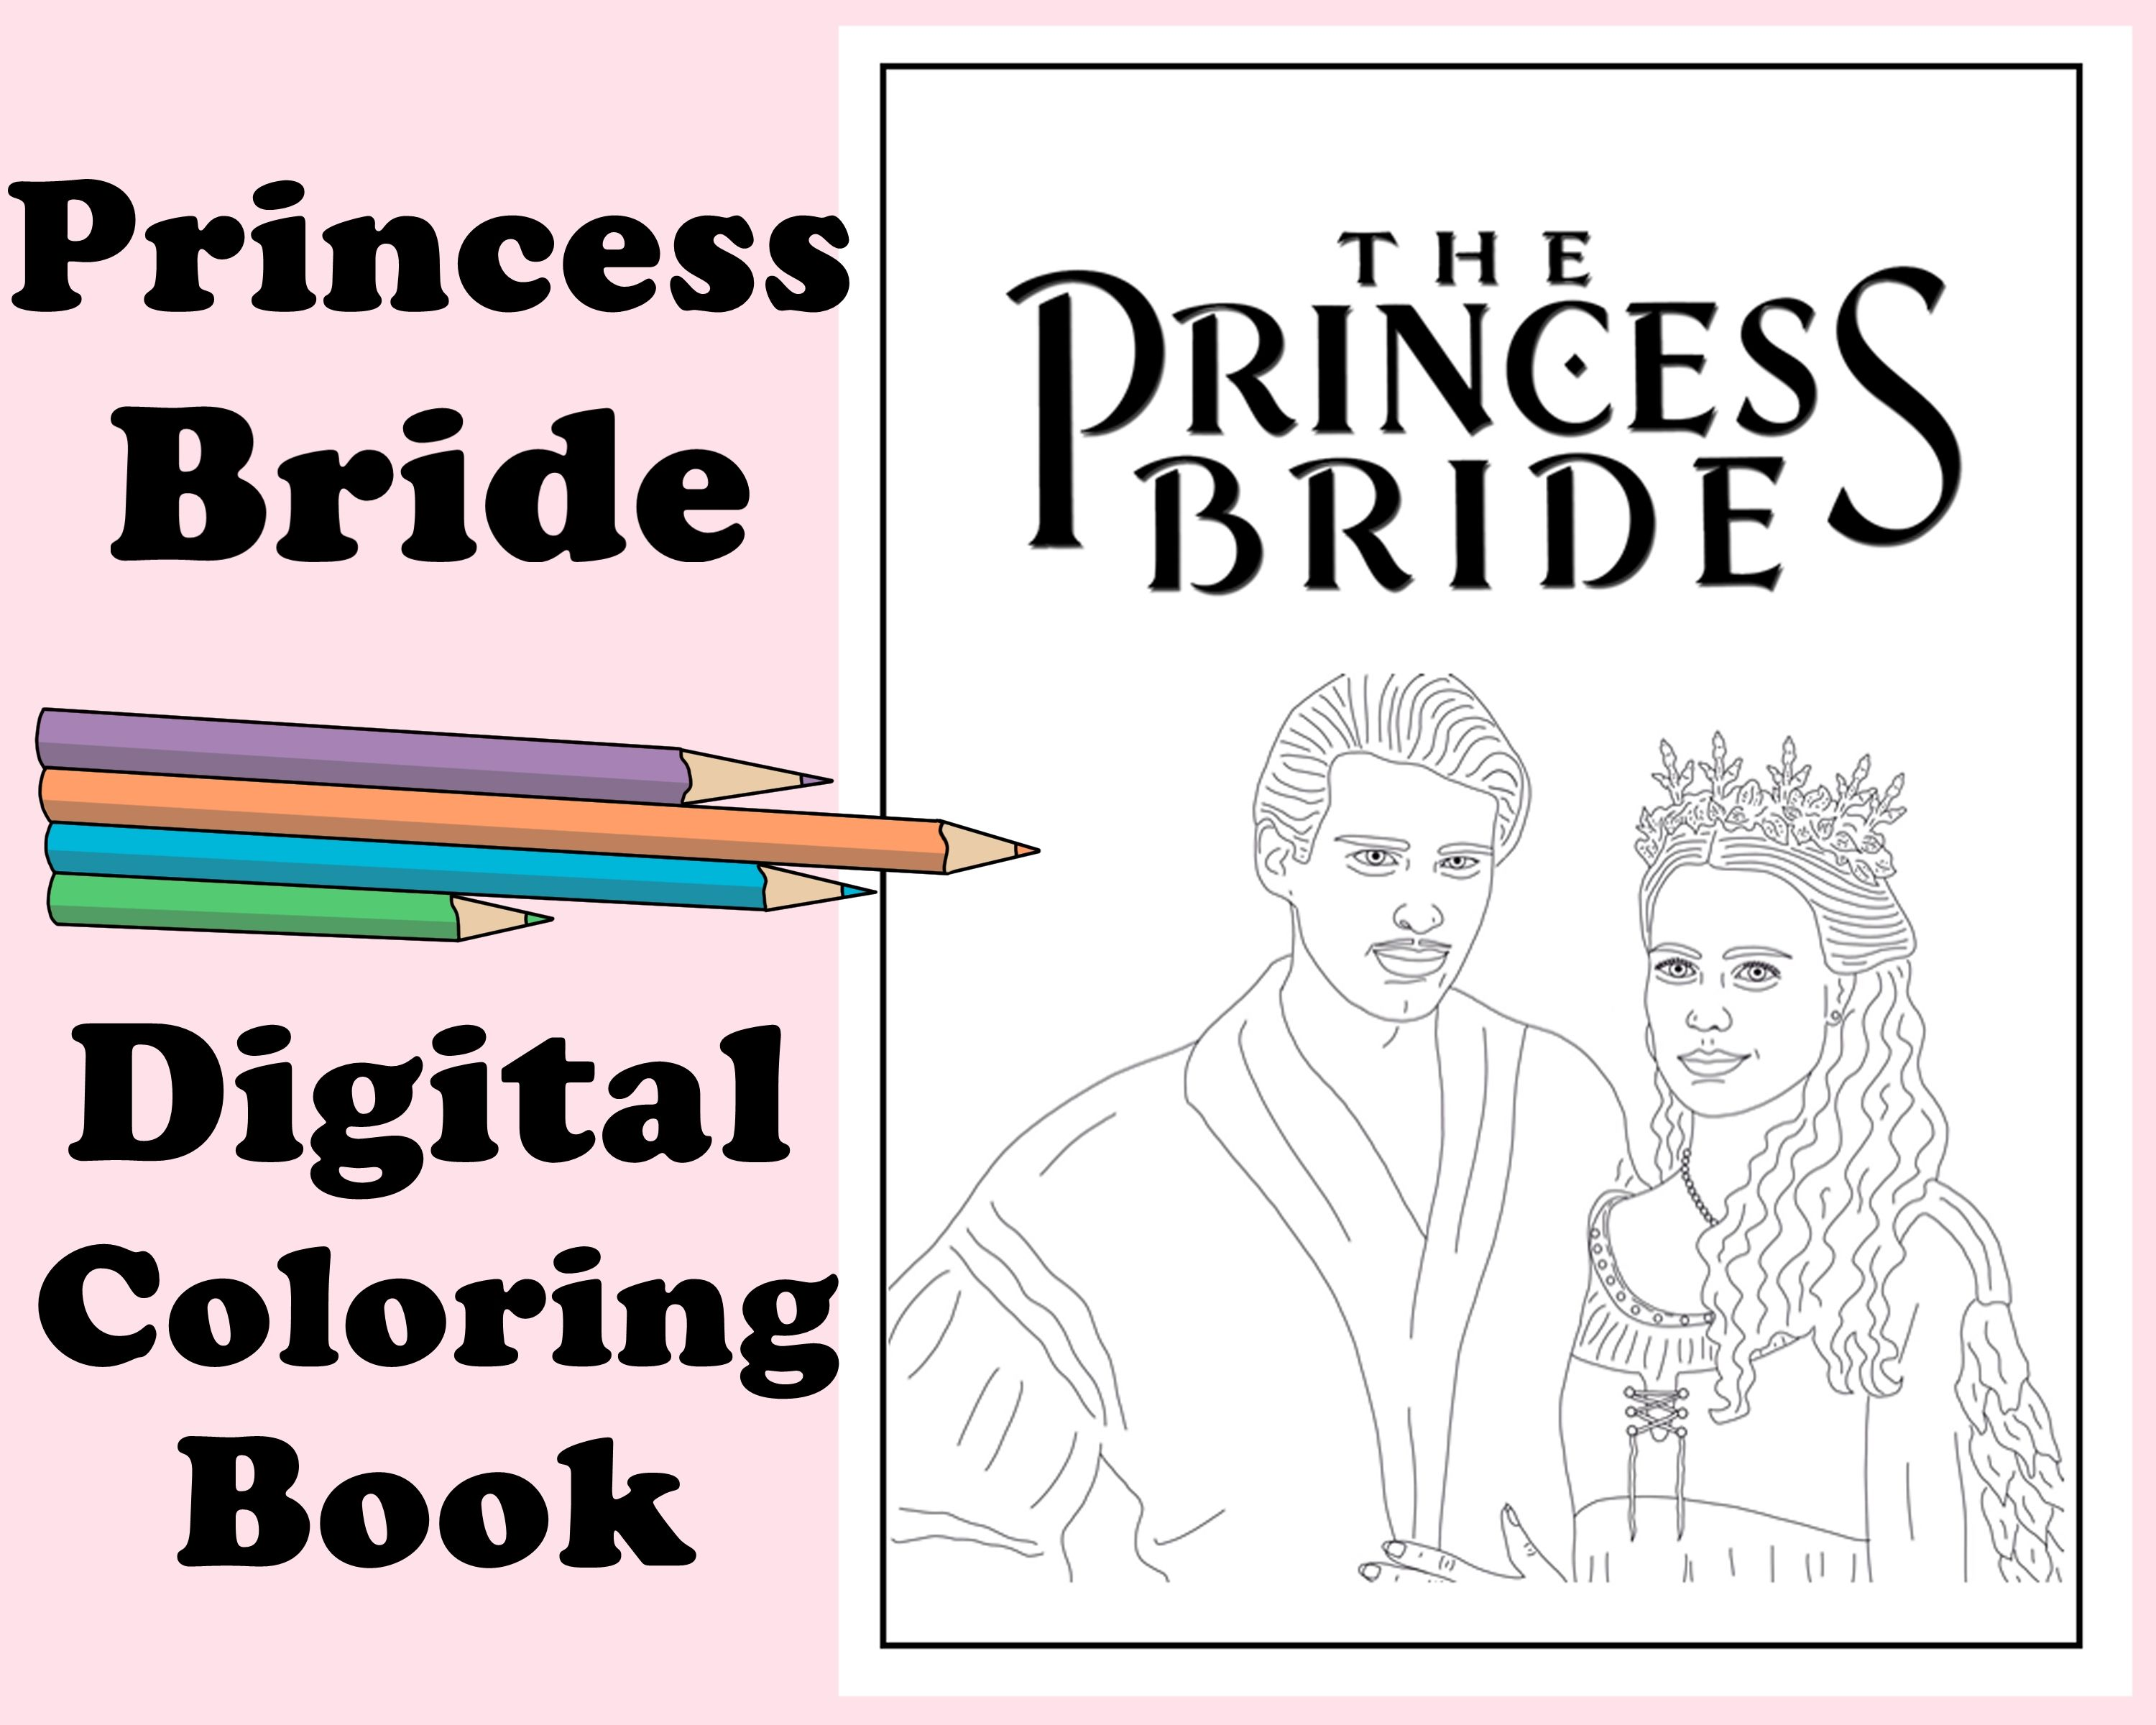 The Princess Bride Coloring Book Instant Printable Digital File Travel Or Rainy Day Activity Art Therapy Coloring Pages Romance Coloring Books Coloring Pages Princess Bride